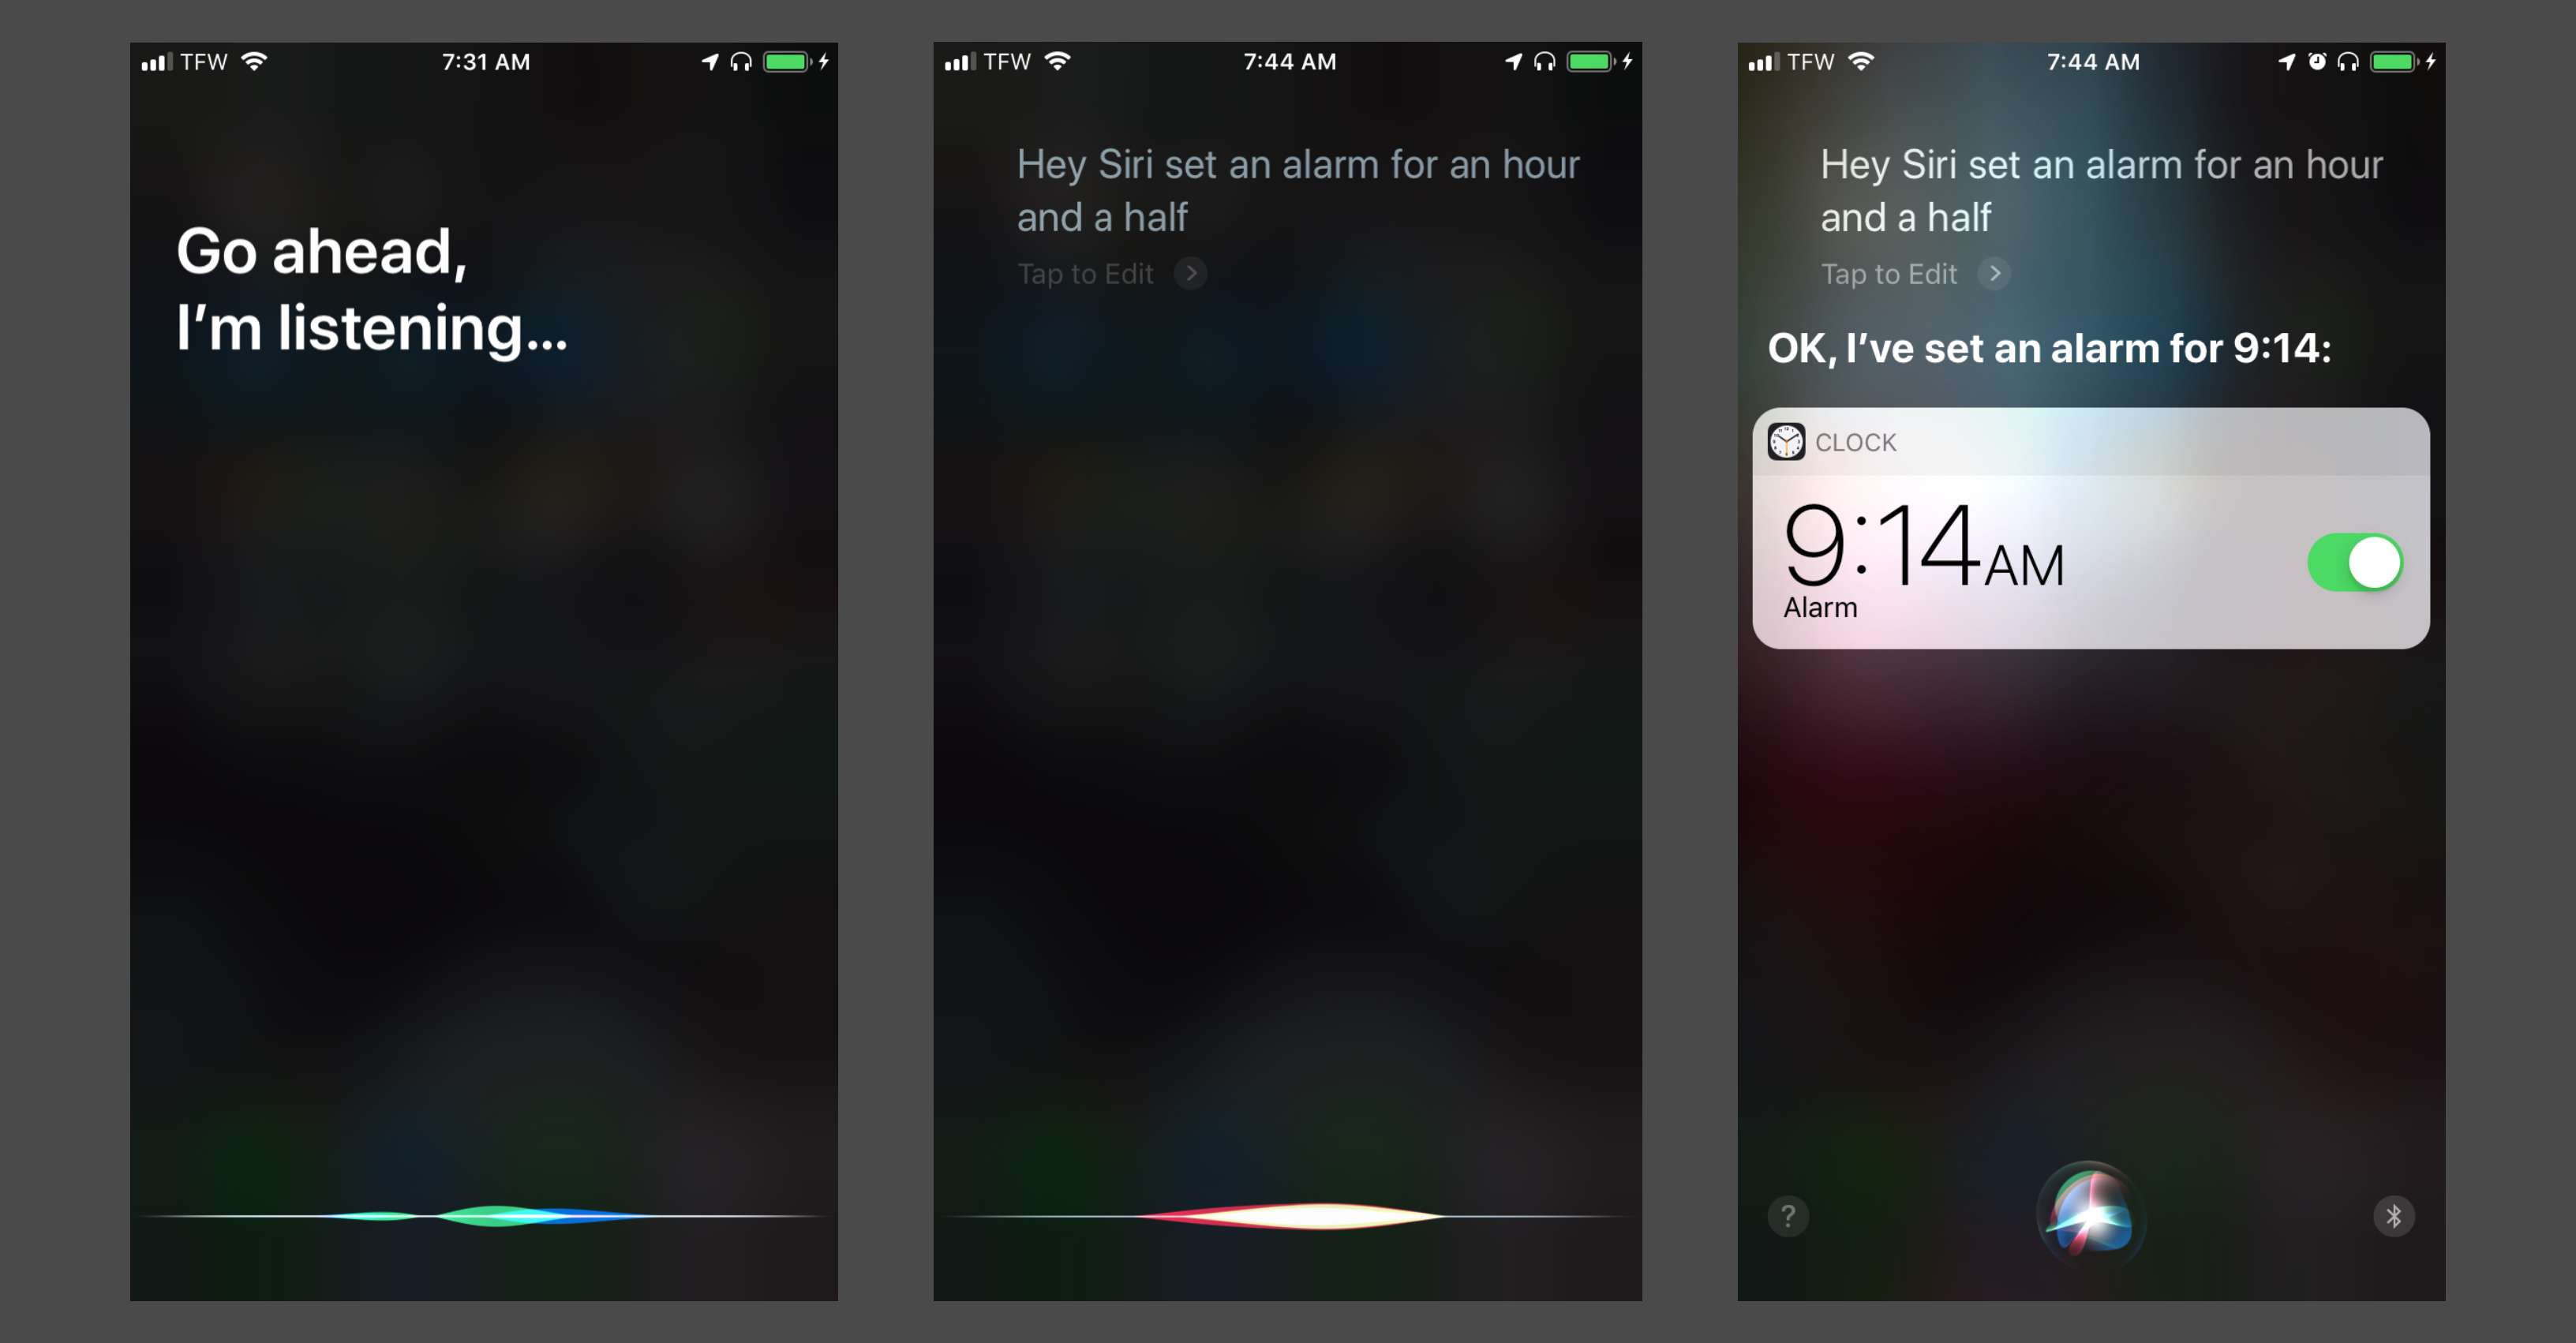 Using Siri and AirPods to set an alarm